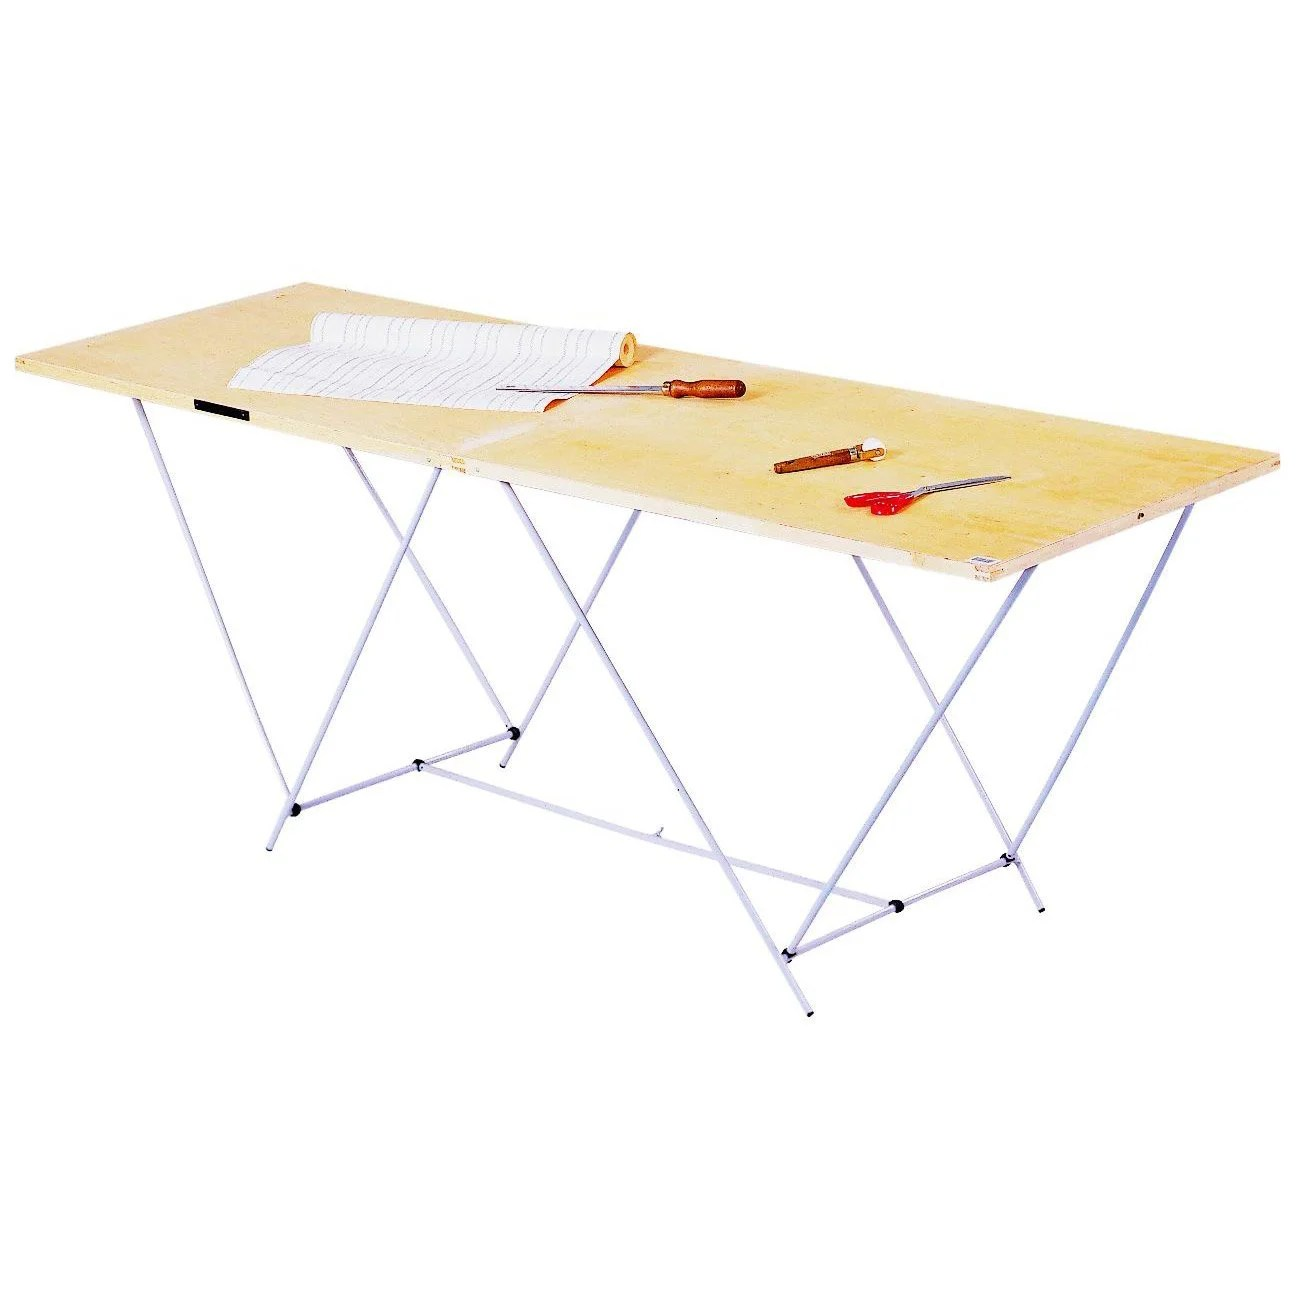 Table Pliable Leroy Merlin Table à Tapisser Pliante Ocai 60 Cm X 2 M Leroy Merlin